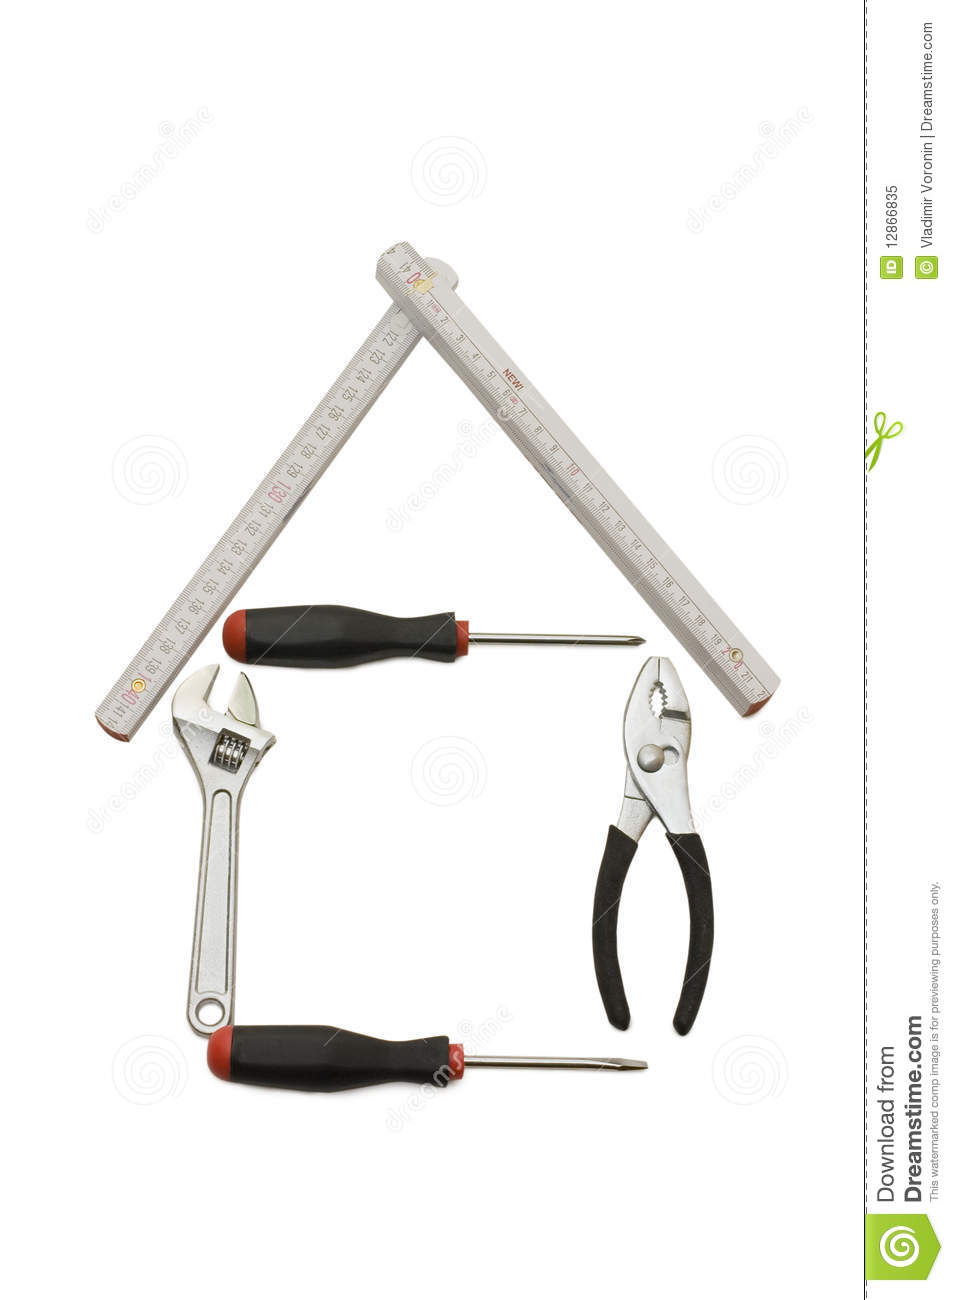 House From Building Tools Royalty Free Stock Photo Image